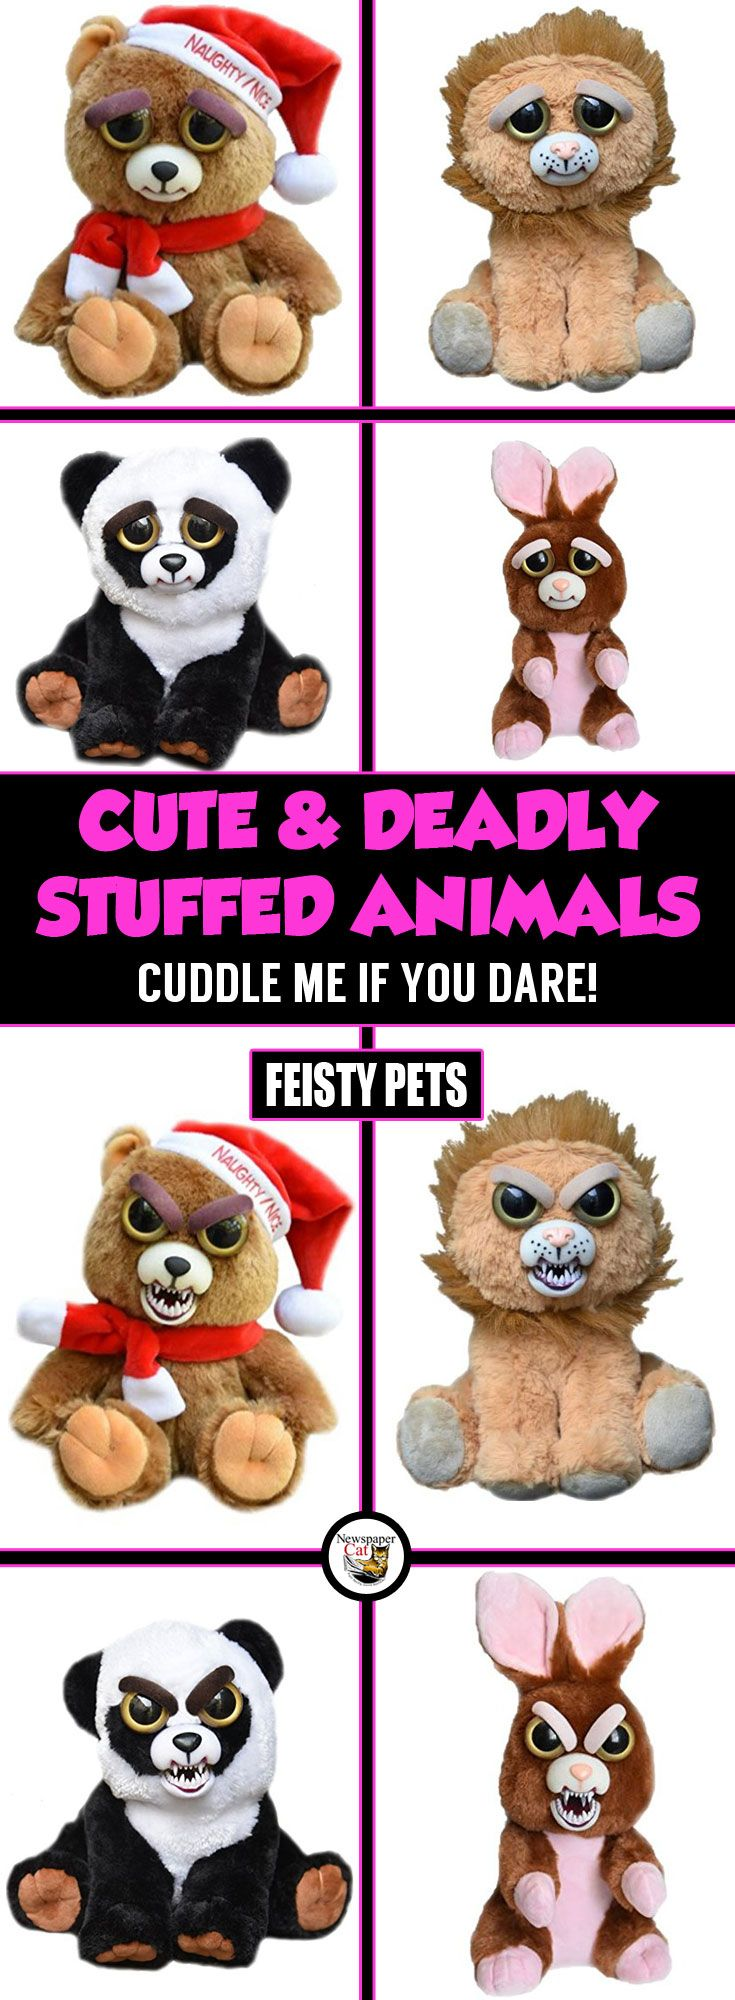 20 Best Fiesty Pets A Surprising Gift Images On